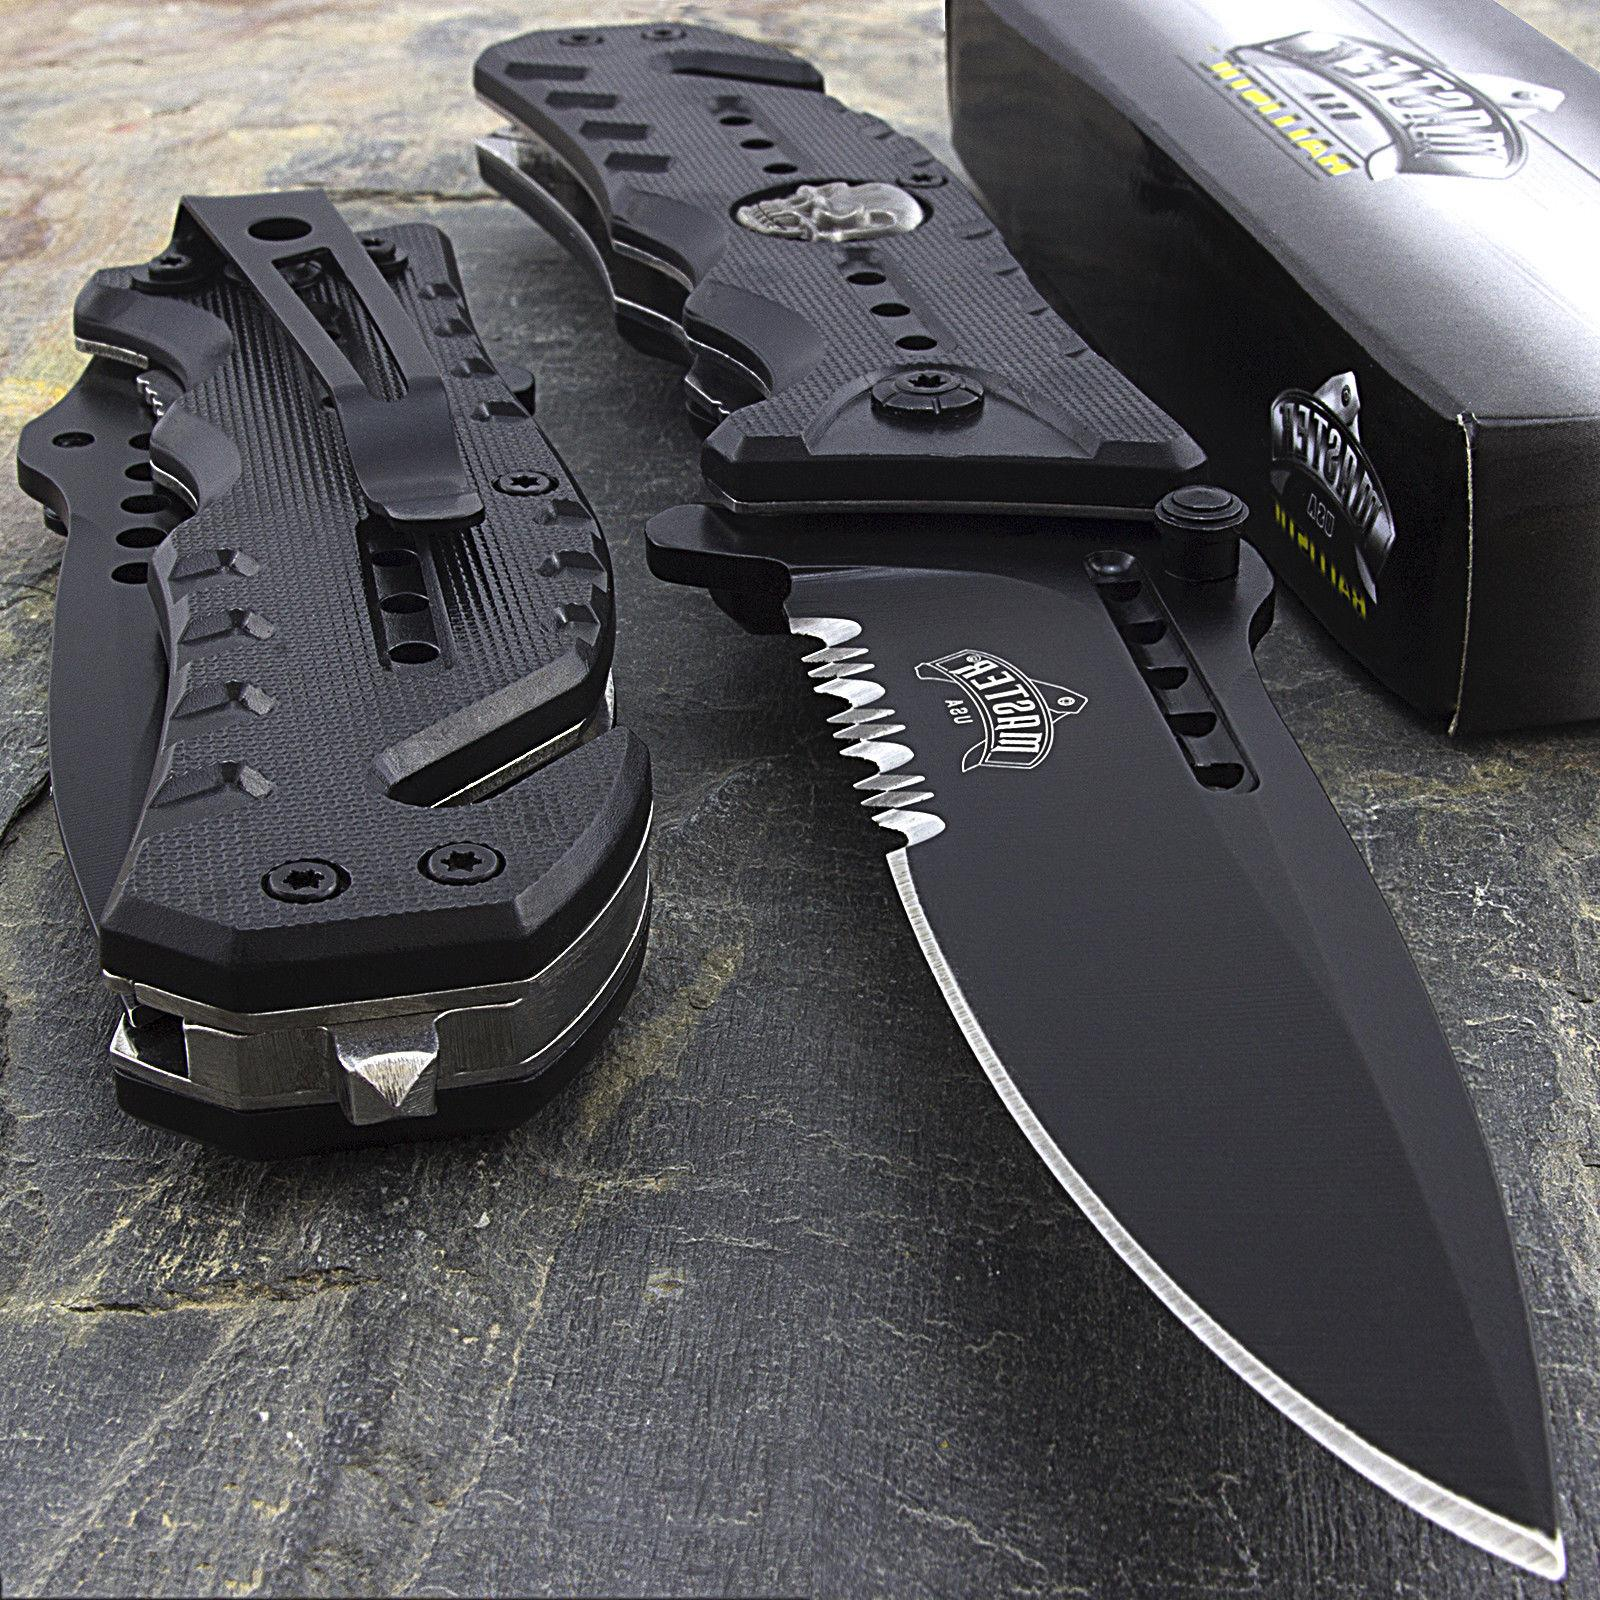 "8"" MASTER USA SKULL SPRING OPEN ASSISTED TACTICAL FOLDING PO"